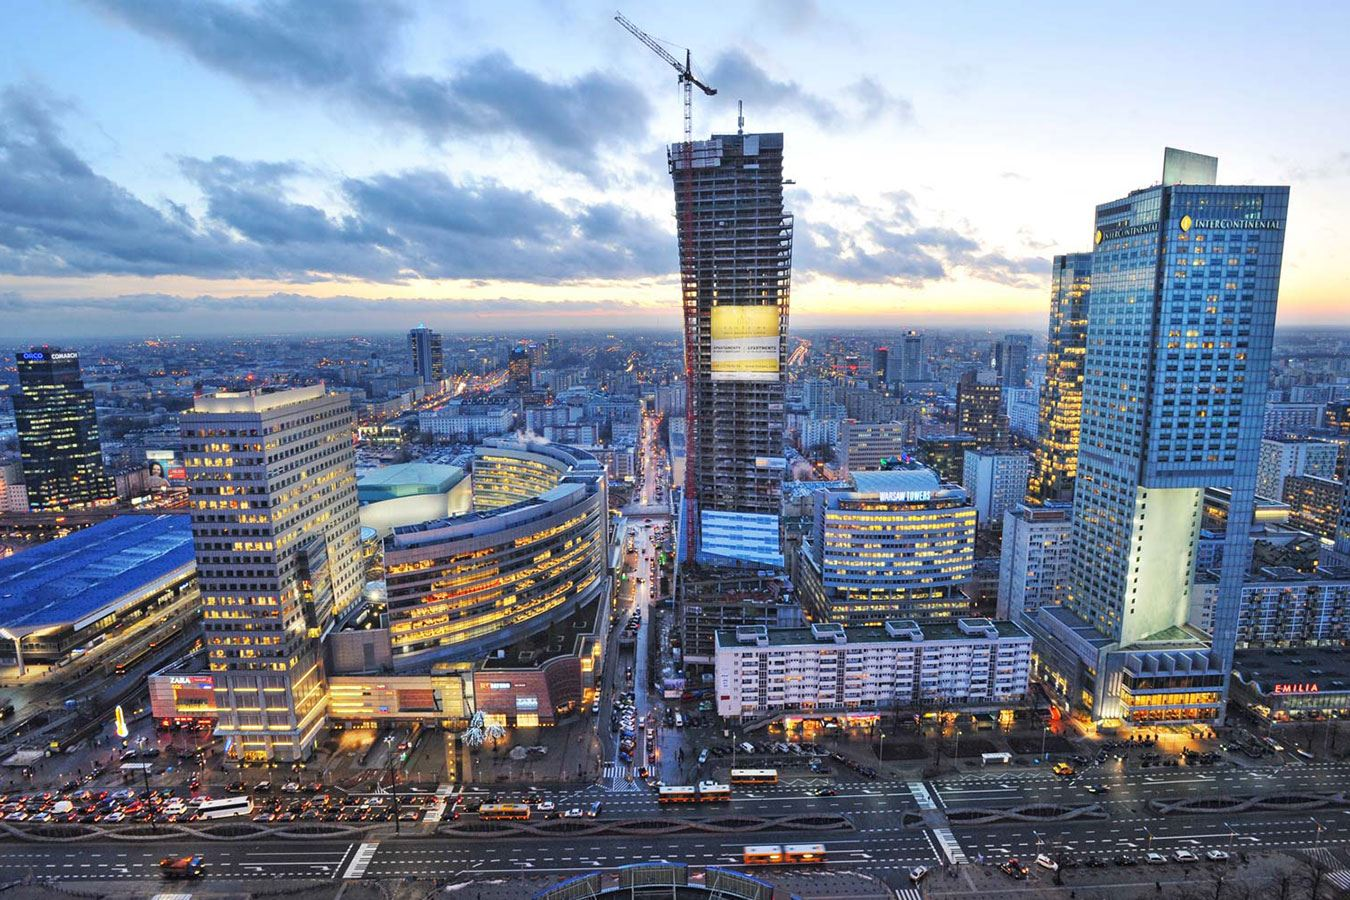 Why FFA is looking at Poland's real estate market